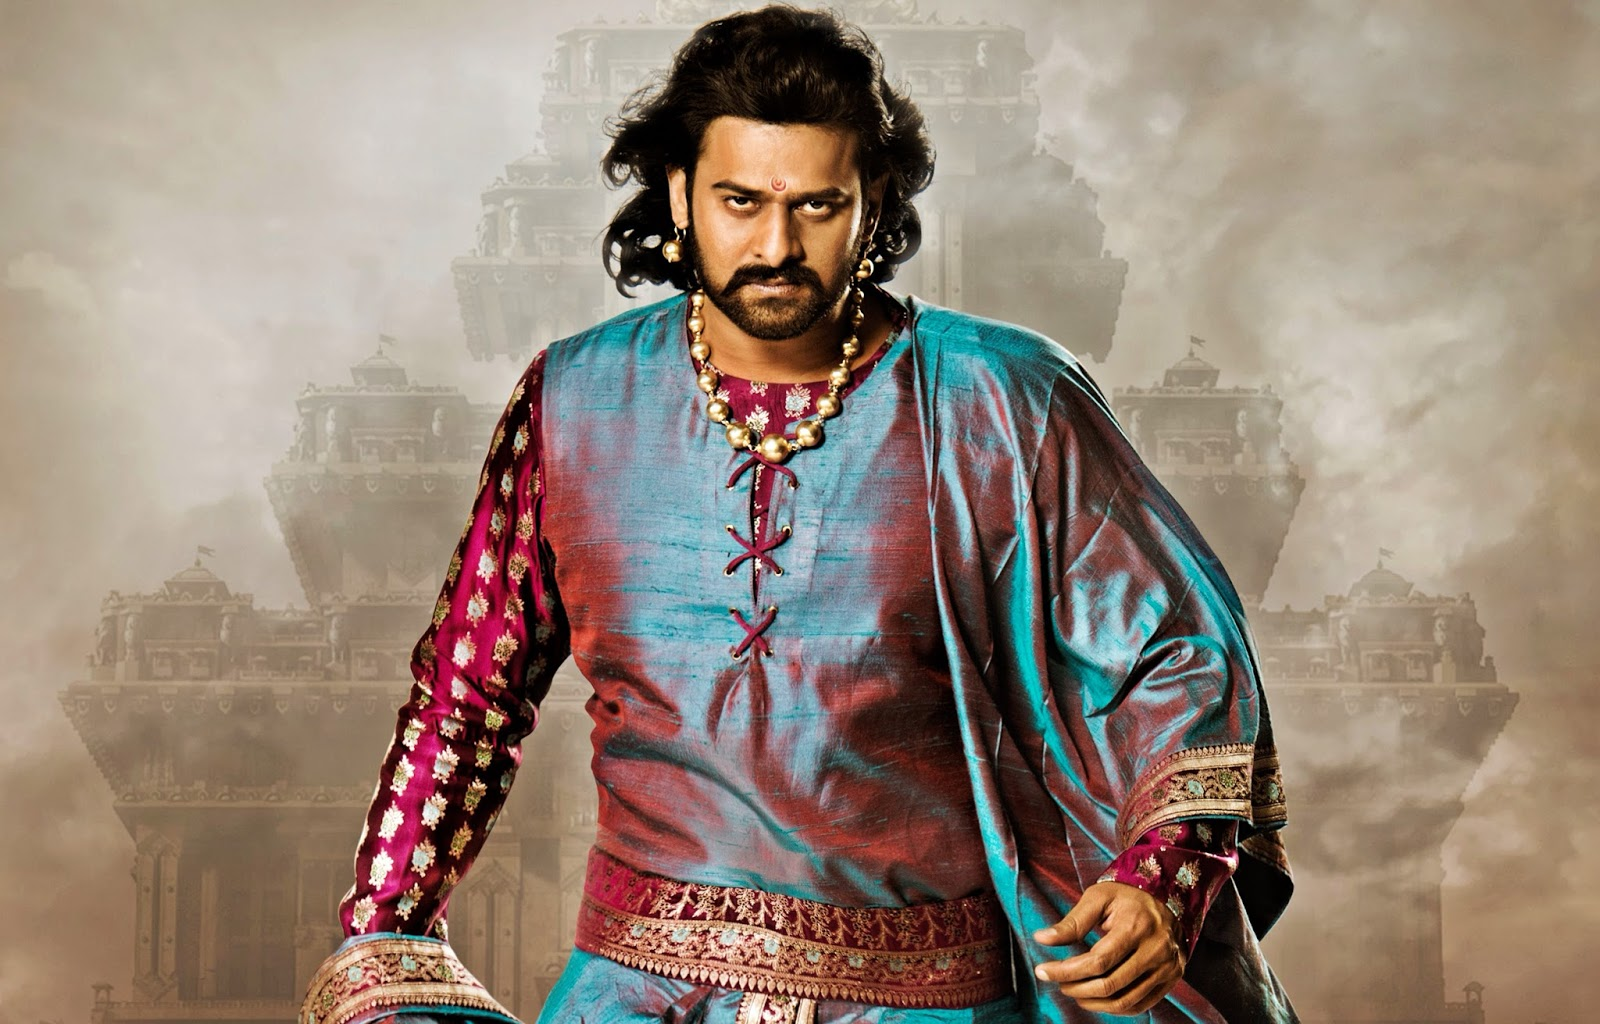 prabhas photos 2017 - latest full hd wallpapers | hd wallpapers